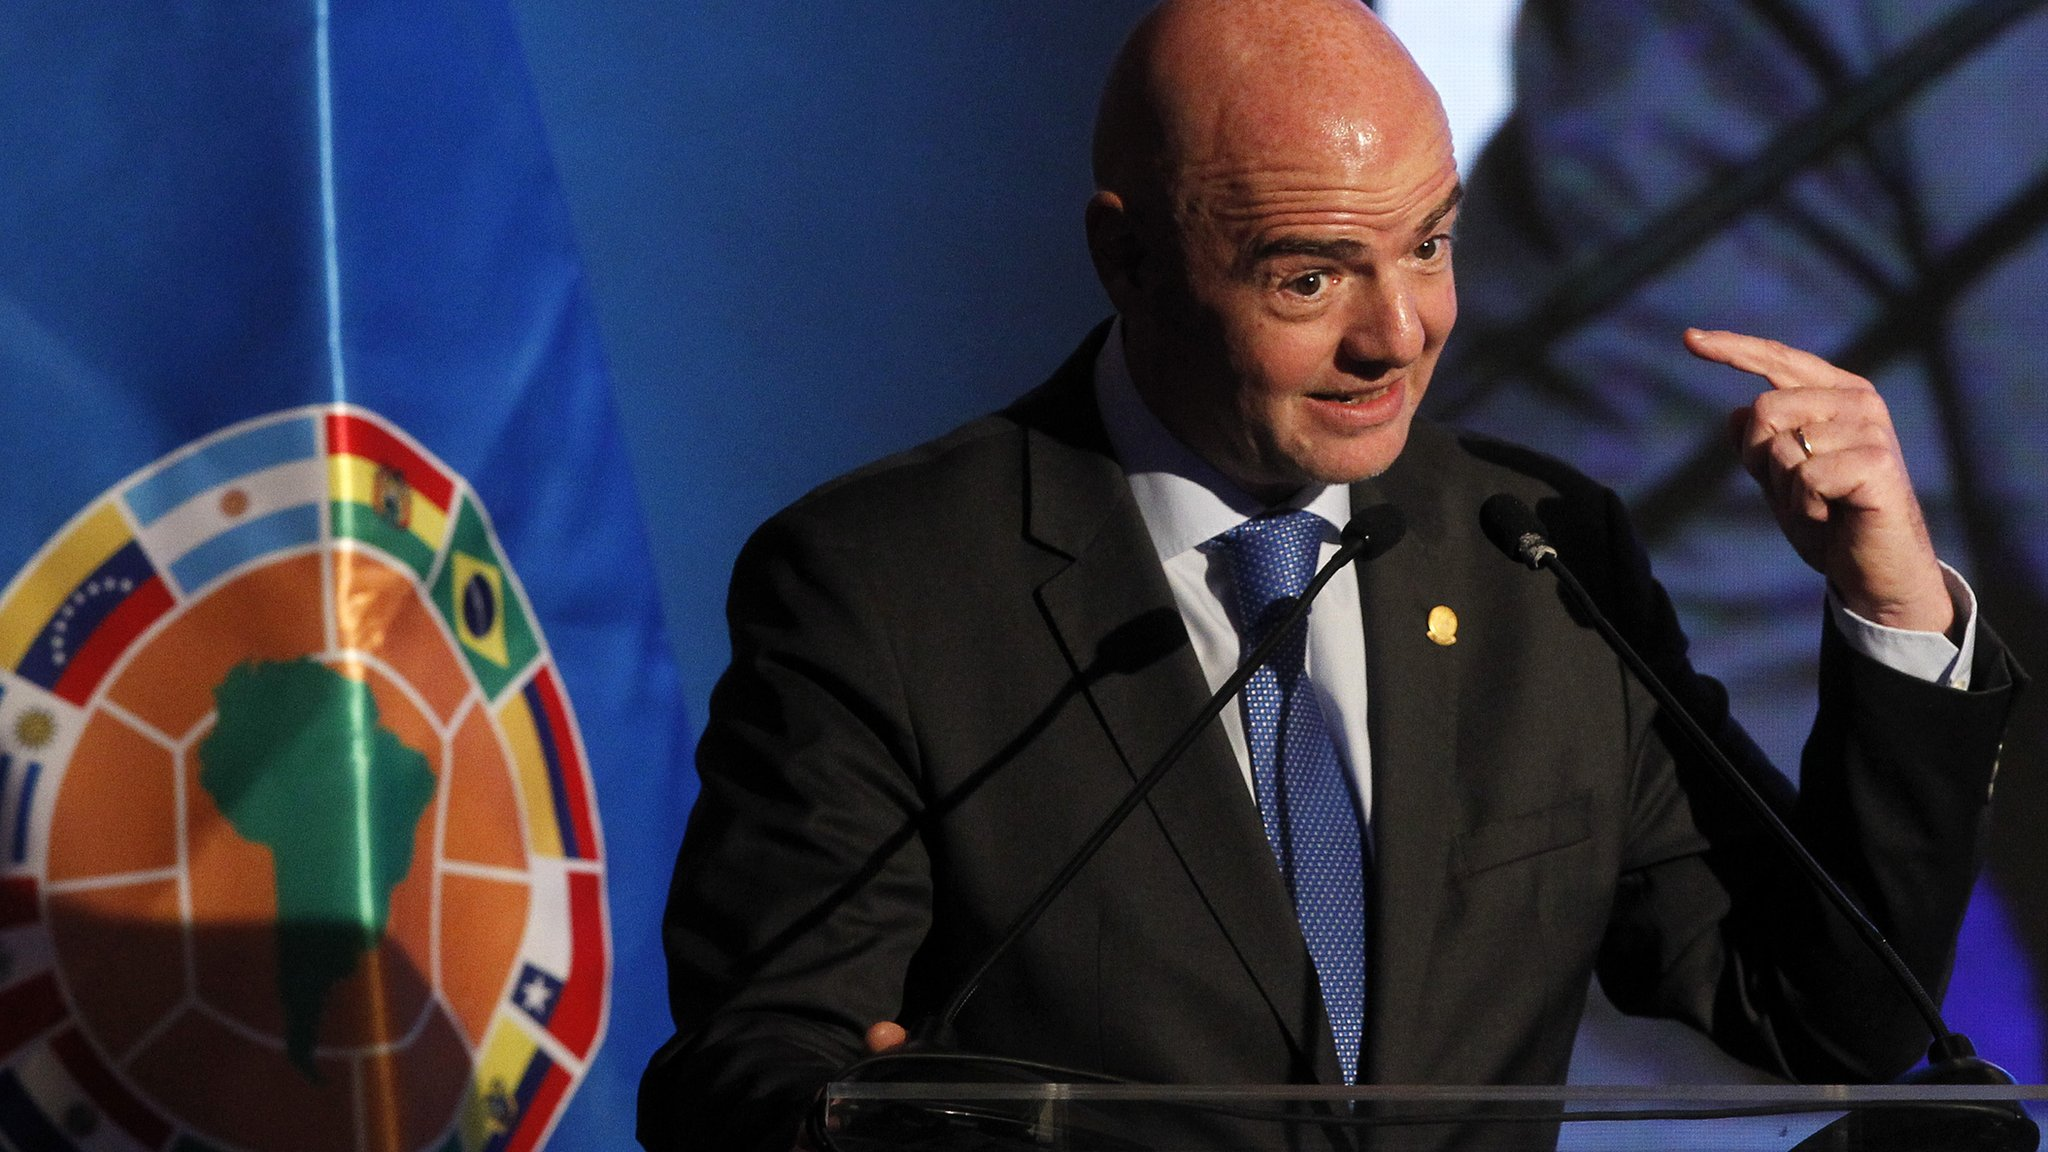 World Cup: Video referees for Russia 2018, says Fifa president Gianni Infantino